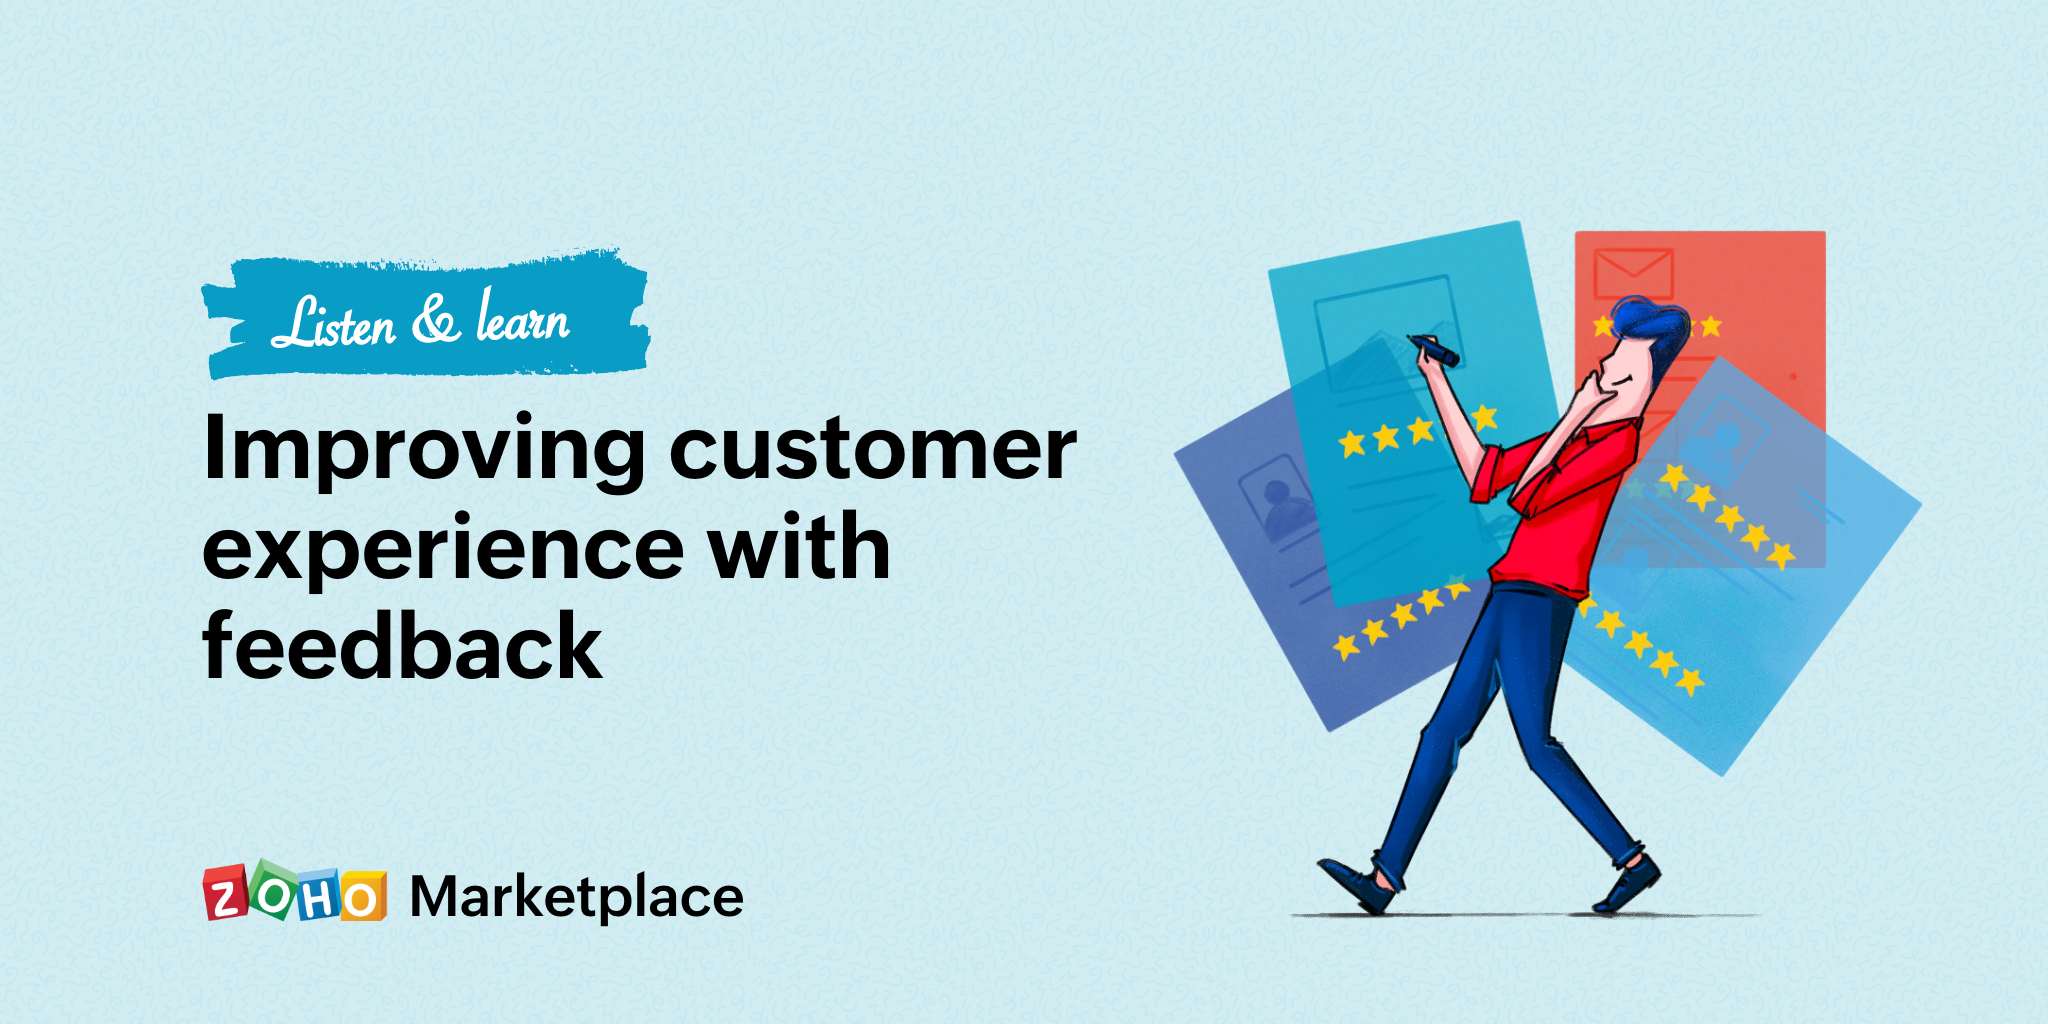 Listen and learn: Improving customer experience with feedback